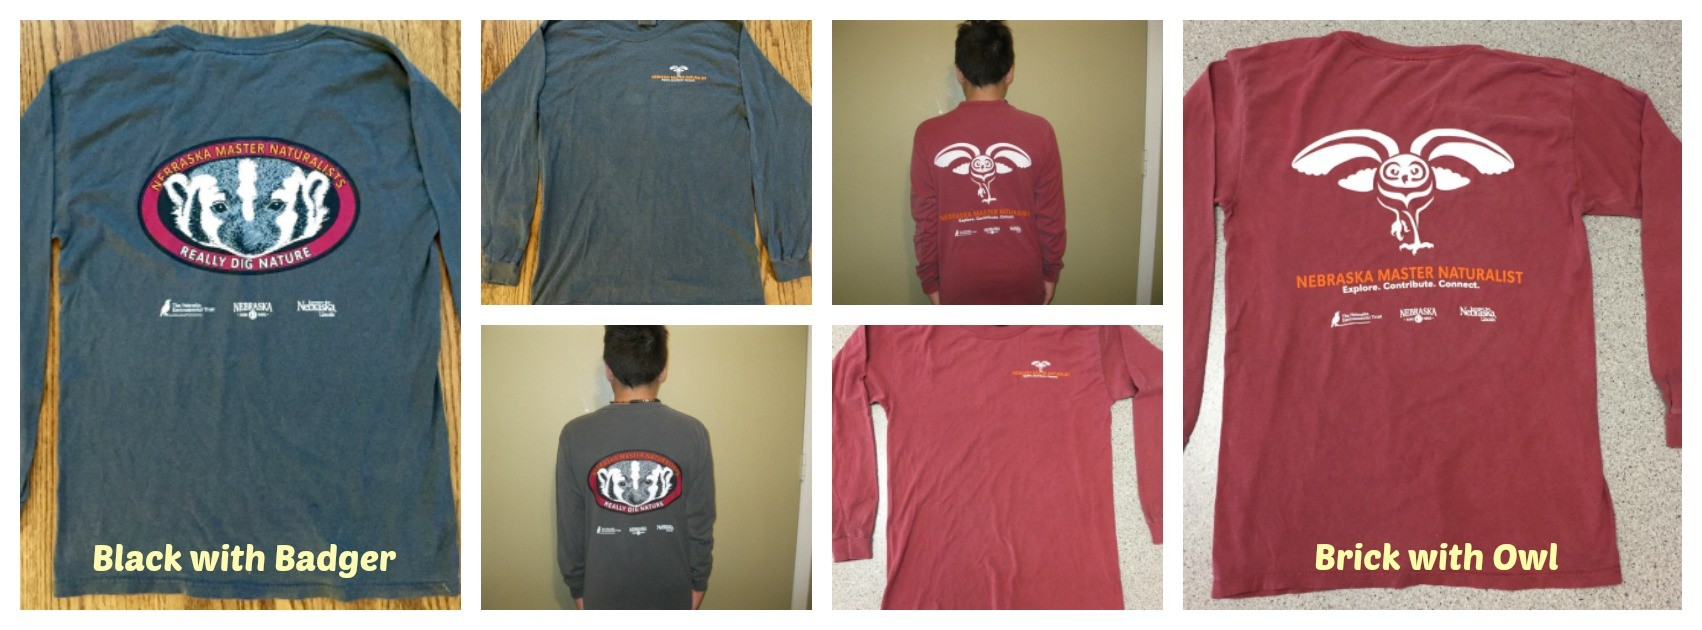 Nebraska Master Naturalist Long Sleeve T-Shirts, select washed Black or Brick (MN-16)